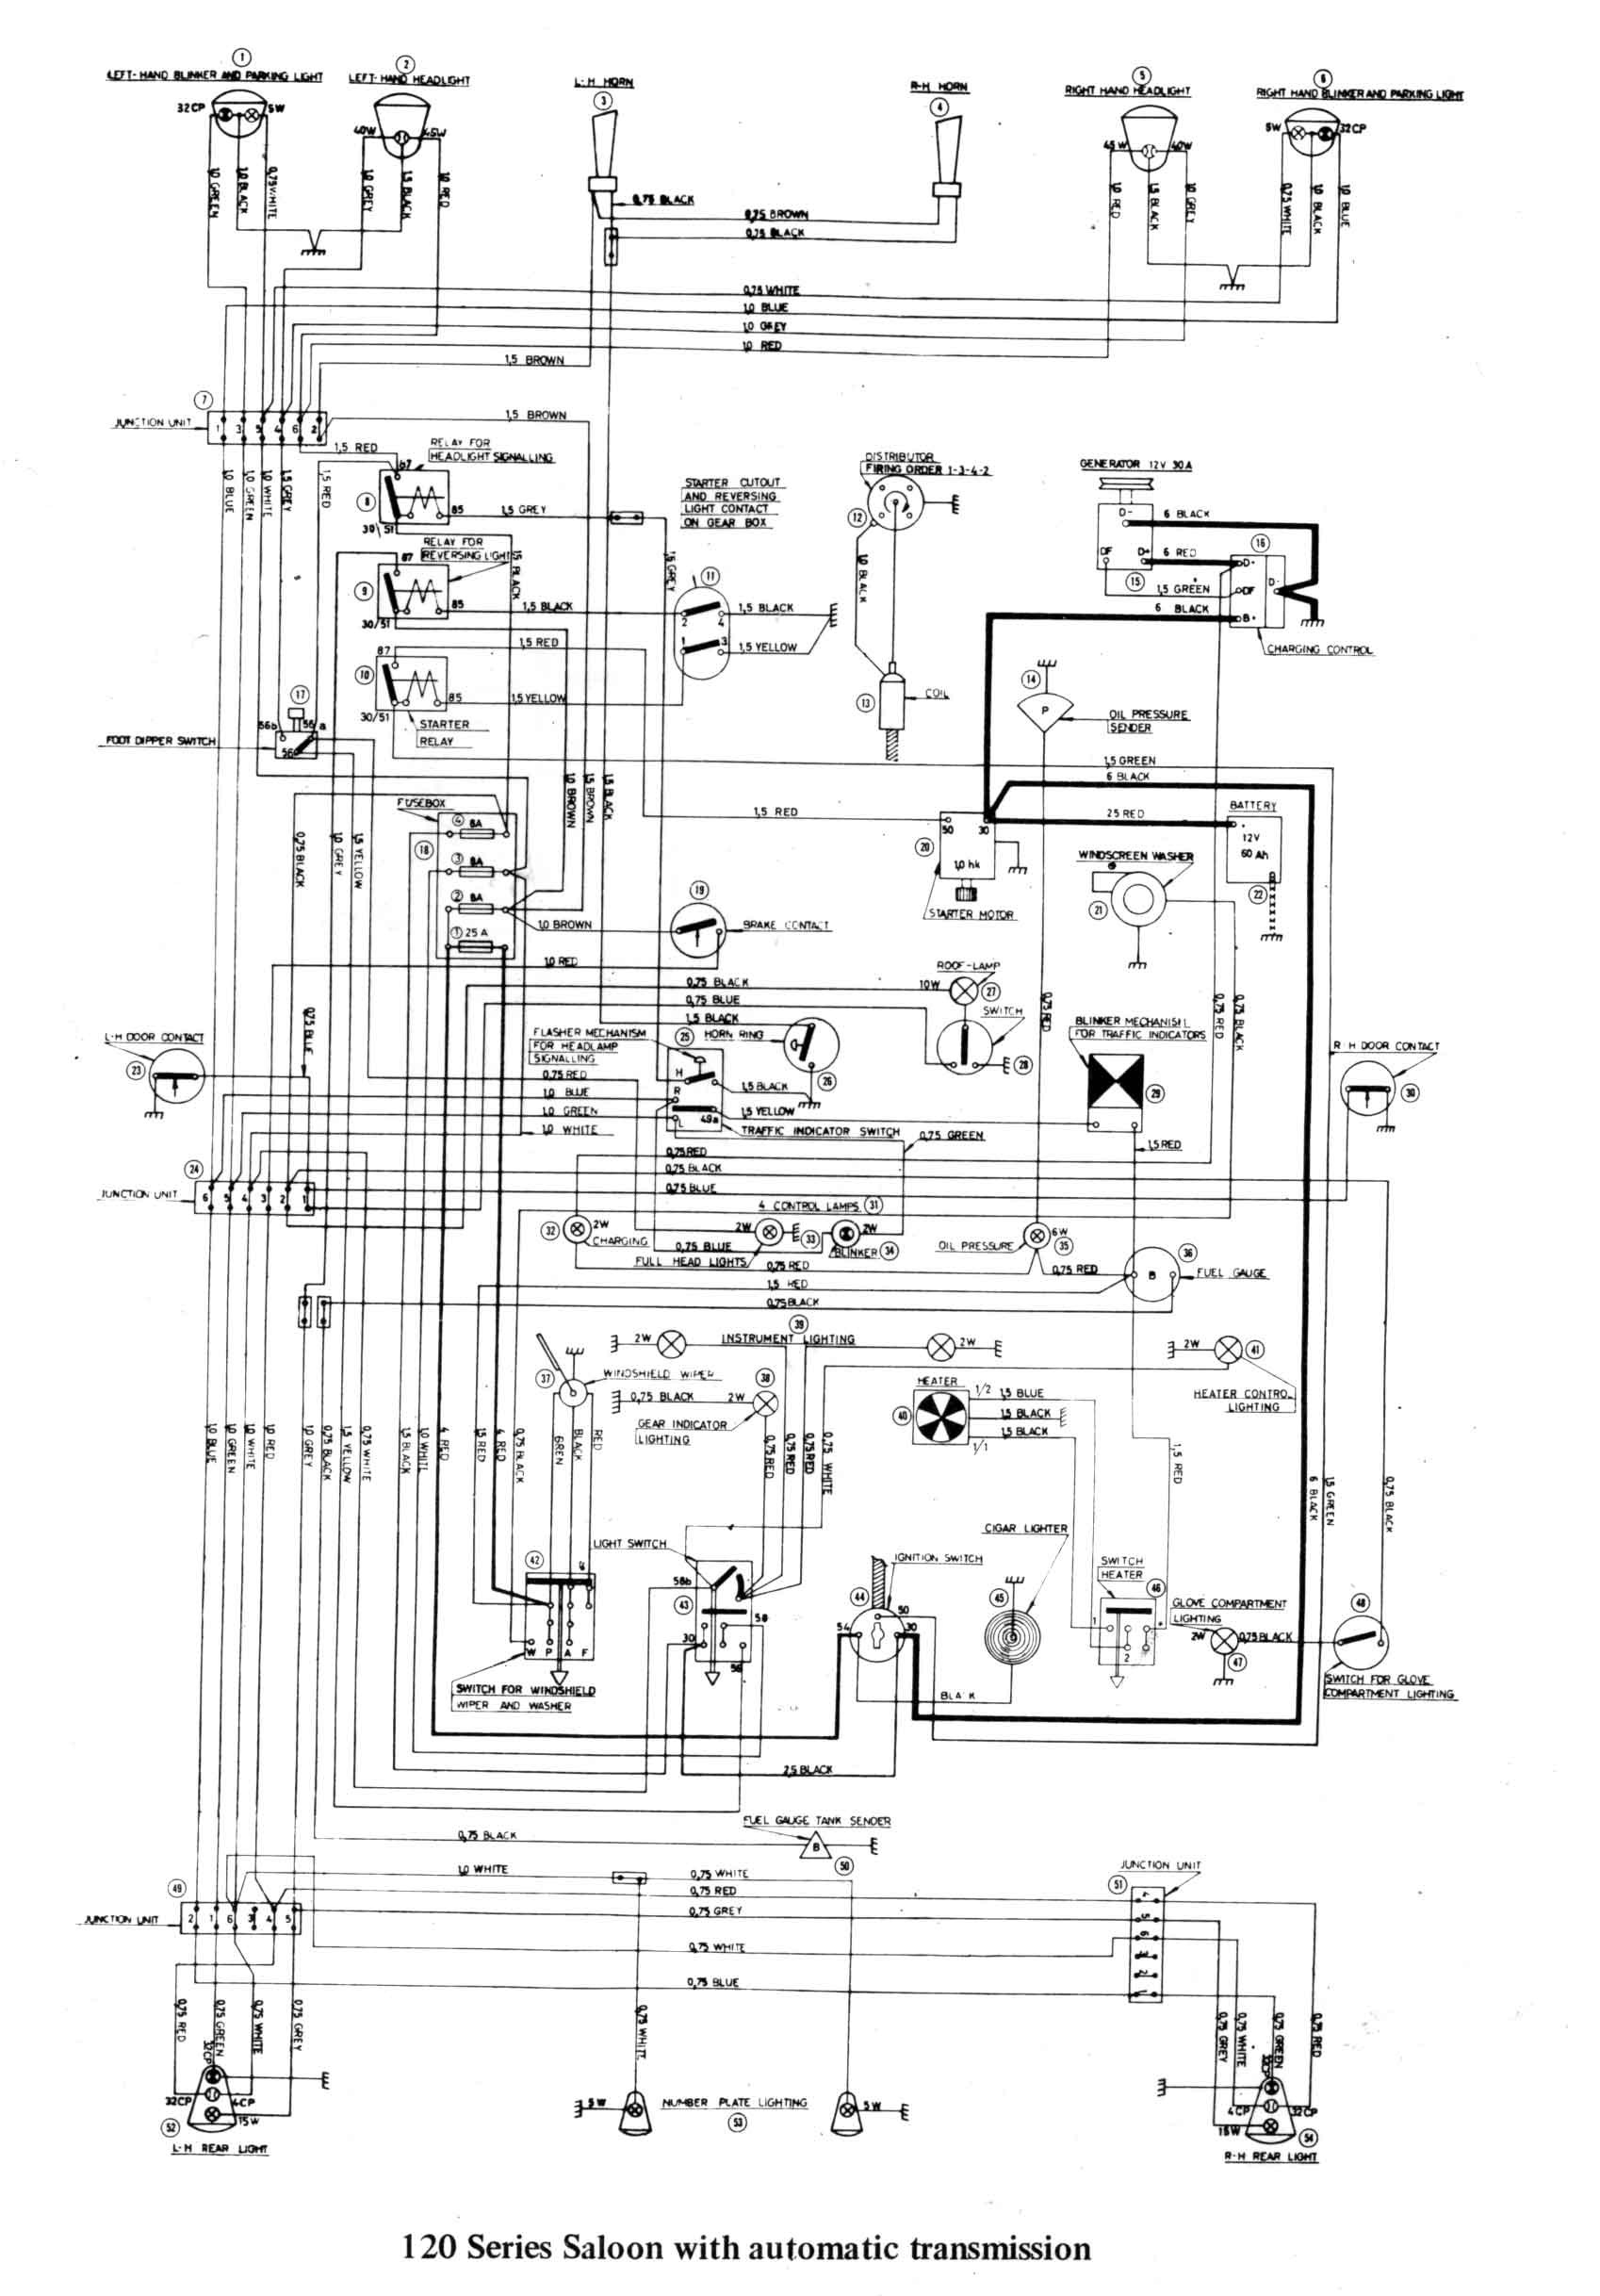 Automatic Transmission Schematic Diagram Sw Em Od Retrofitting On A Vintage Volvo Of Automatic Transmission Schematic Diagram